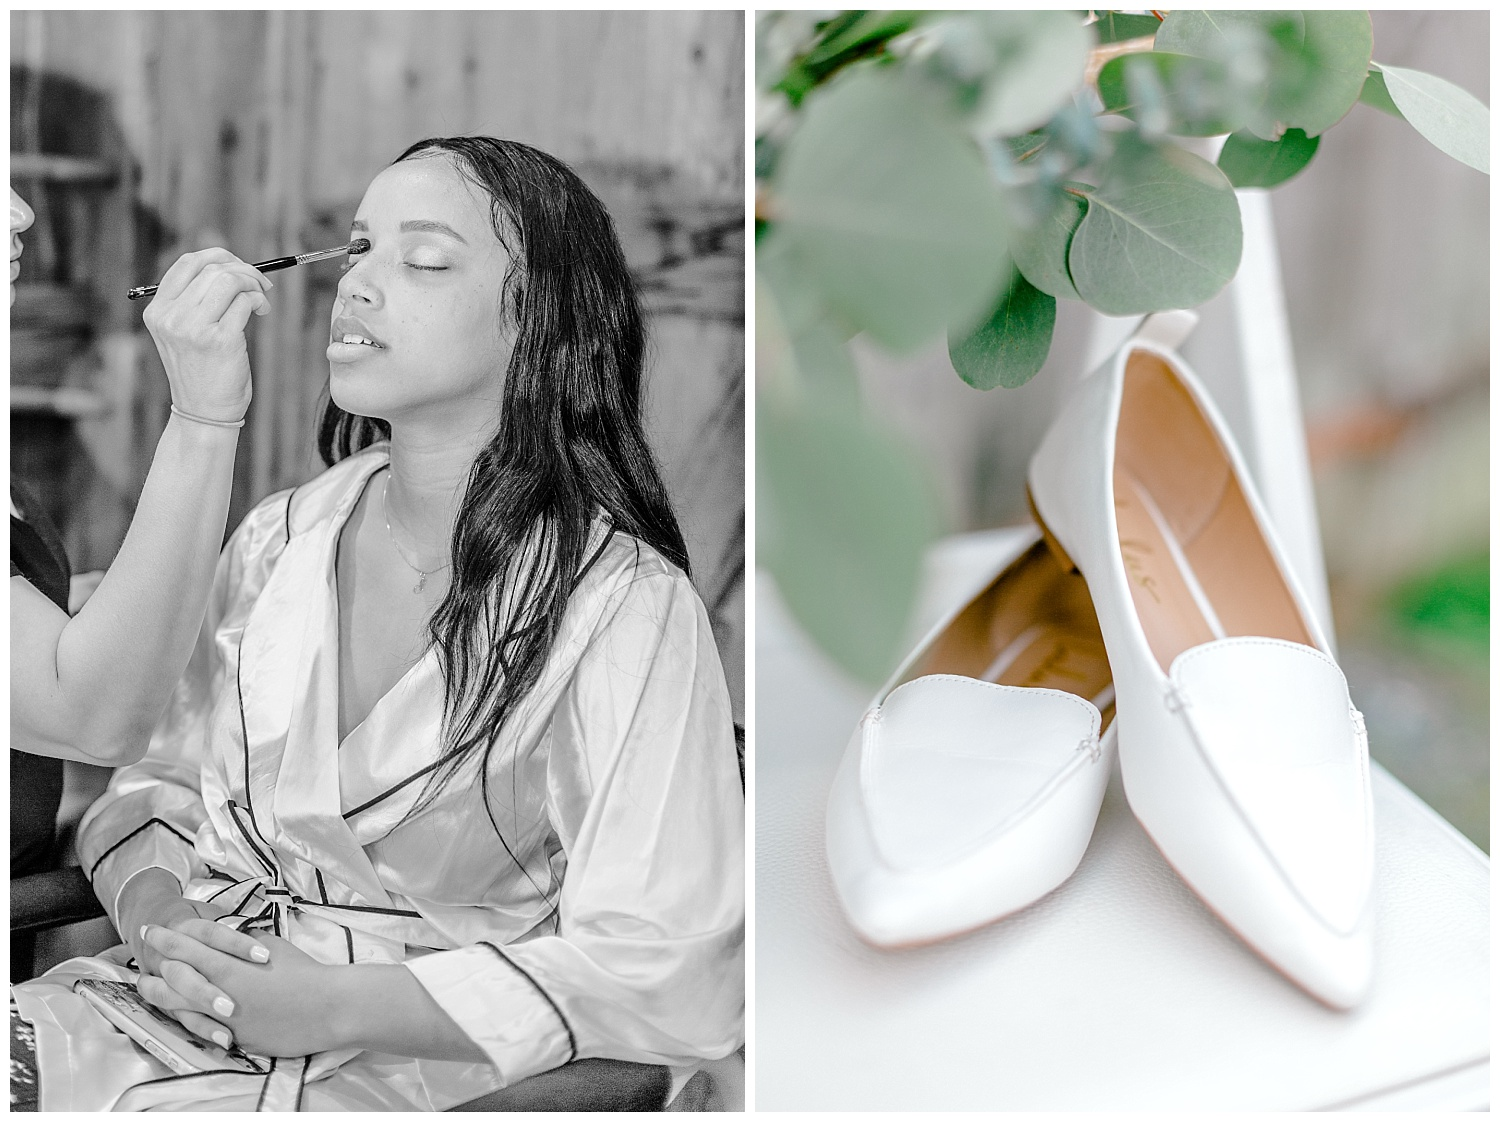 Olive green and white rustic barn wedding at burnside plantation in bethlehem pennsylvania by PA based destination wedding and lifestyle photographer Lytle photography (4).jpg